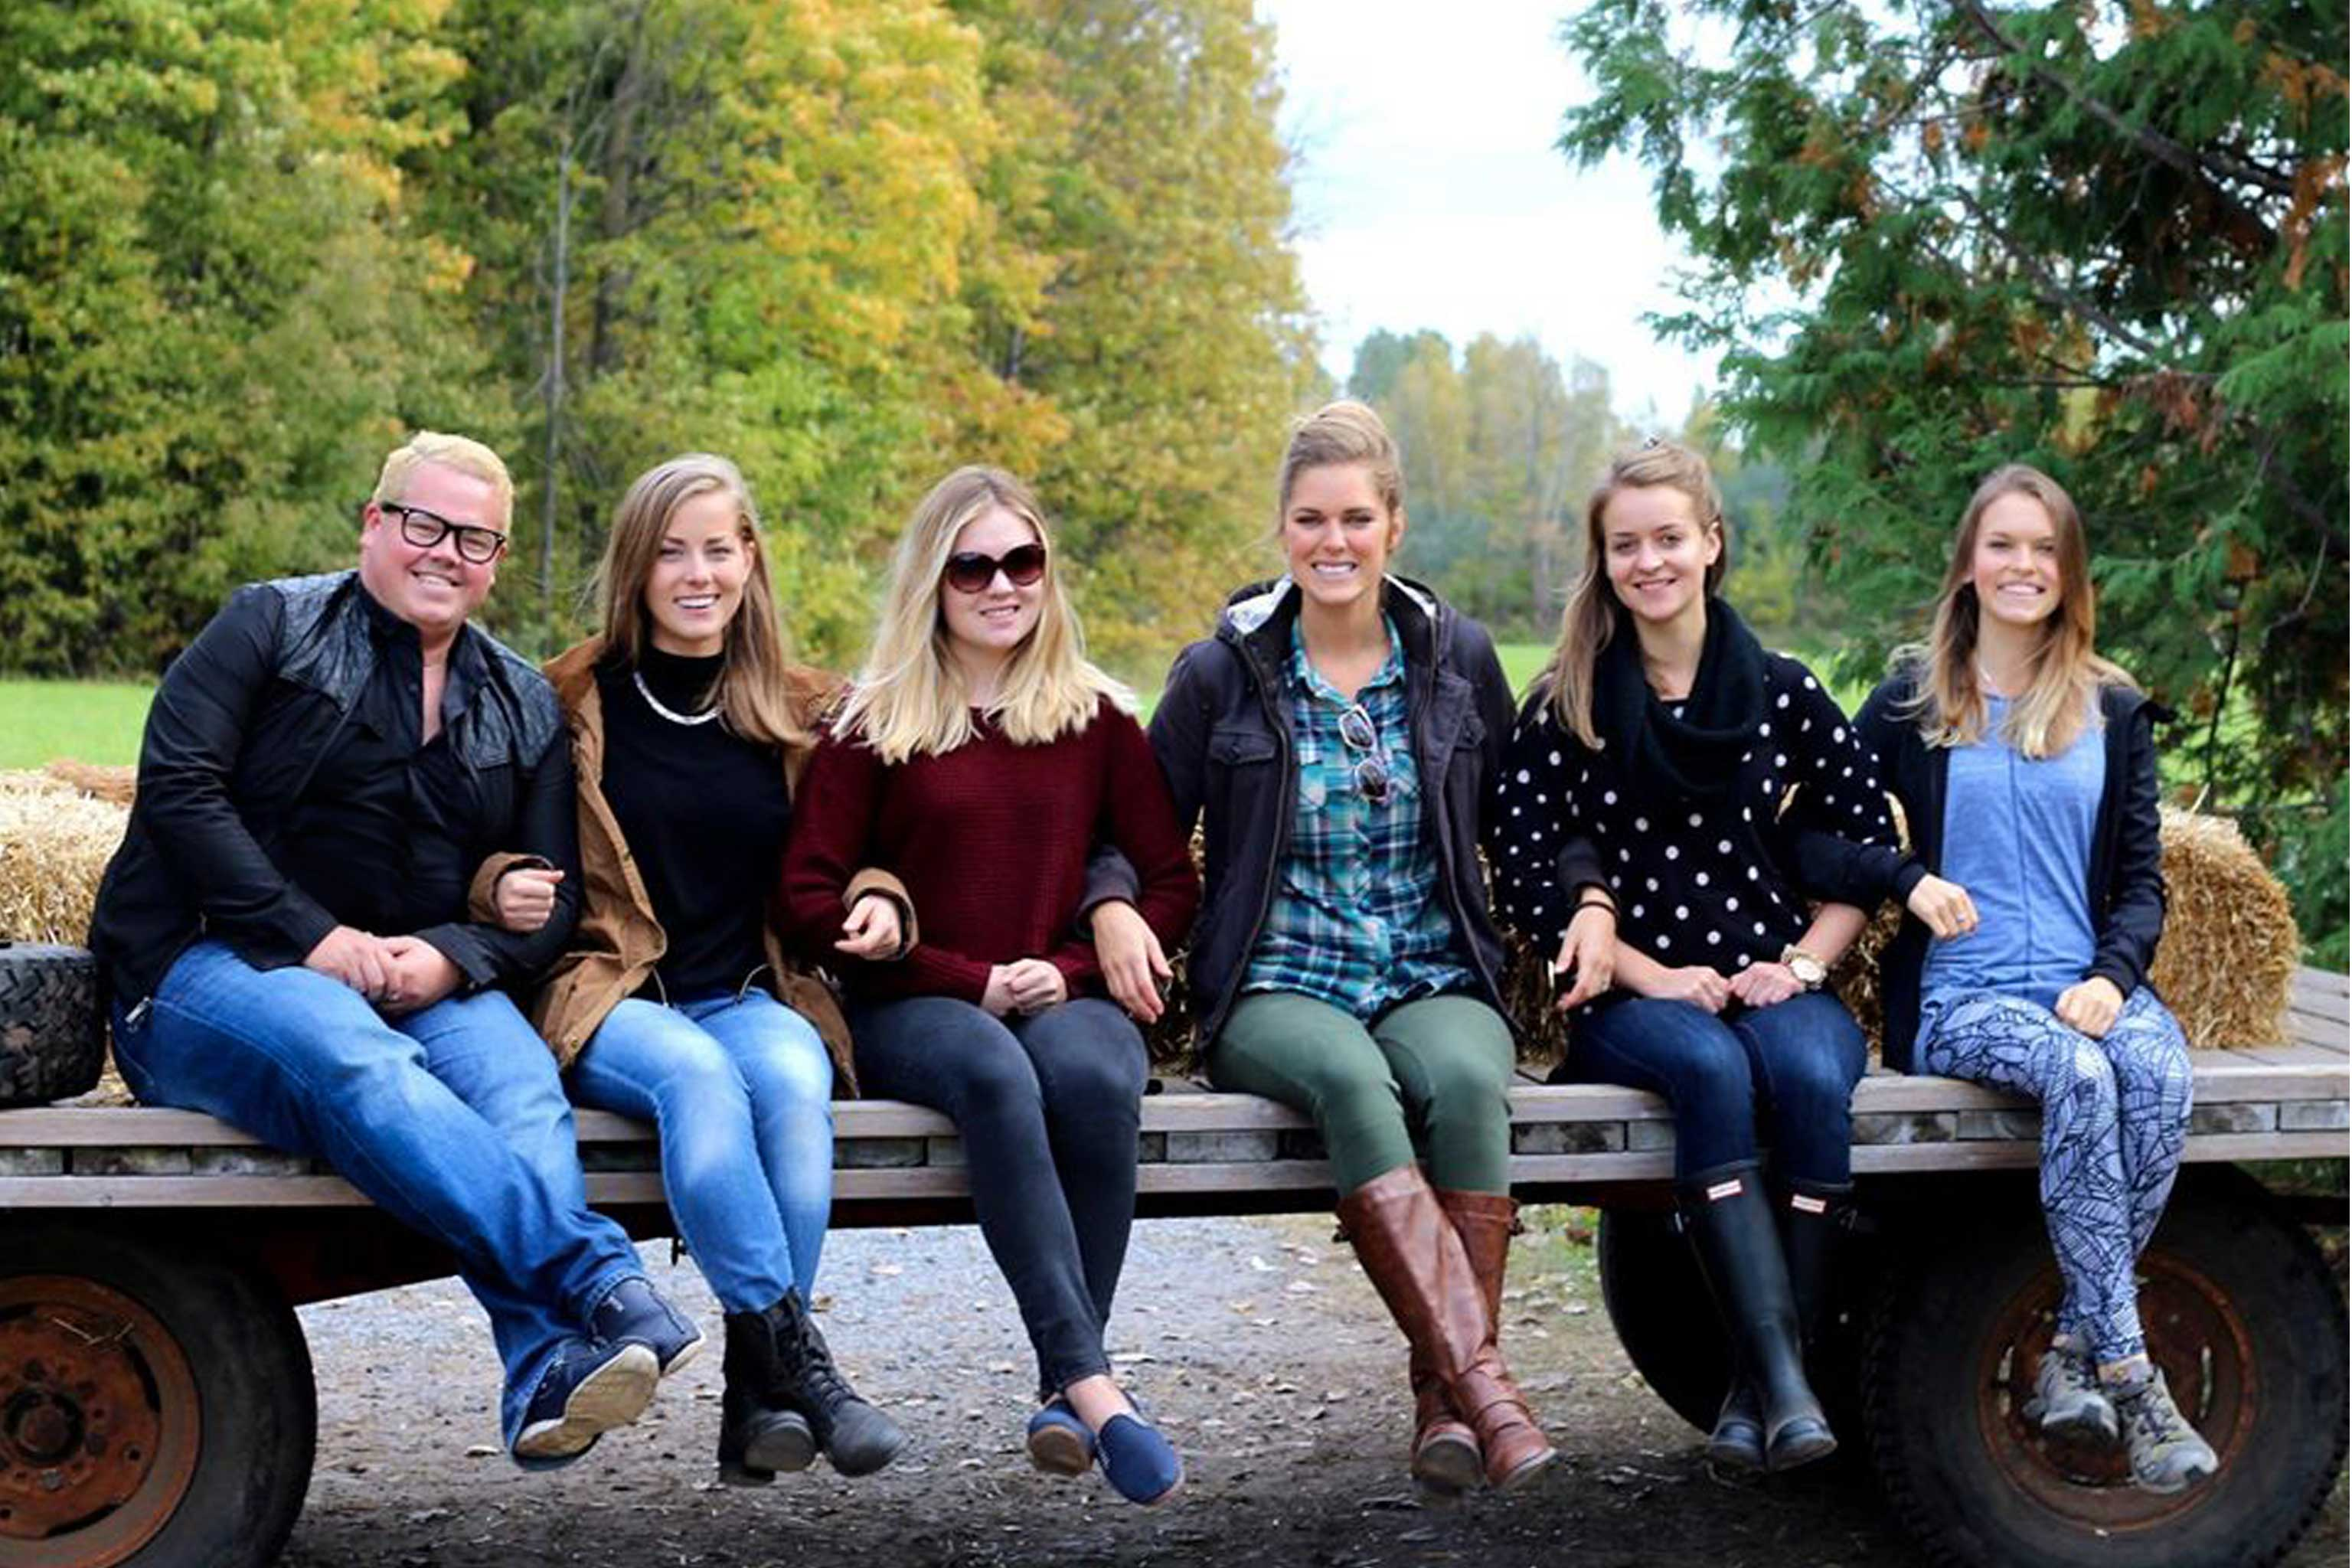 A group of 6 smiling people sitting on a flat trailer behind a truck, with fall foliage in the background